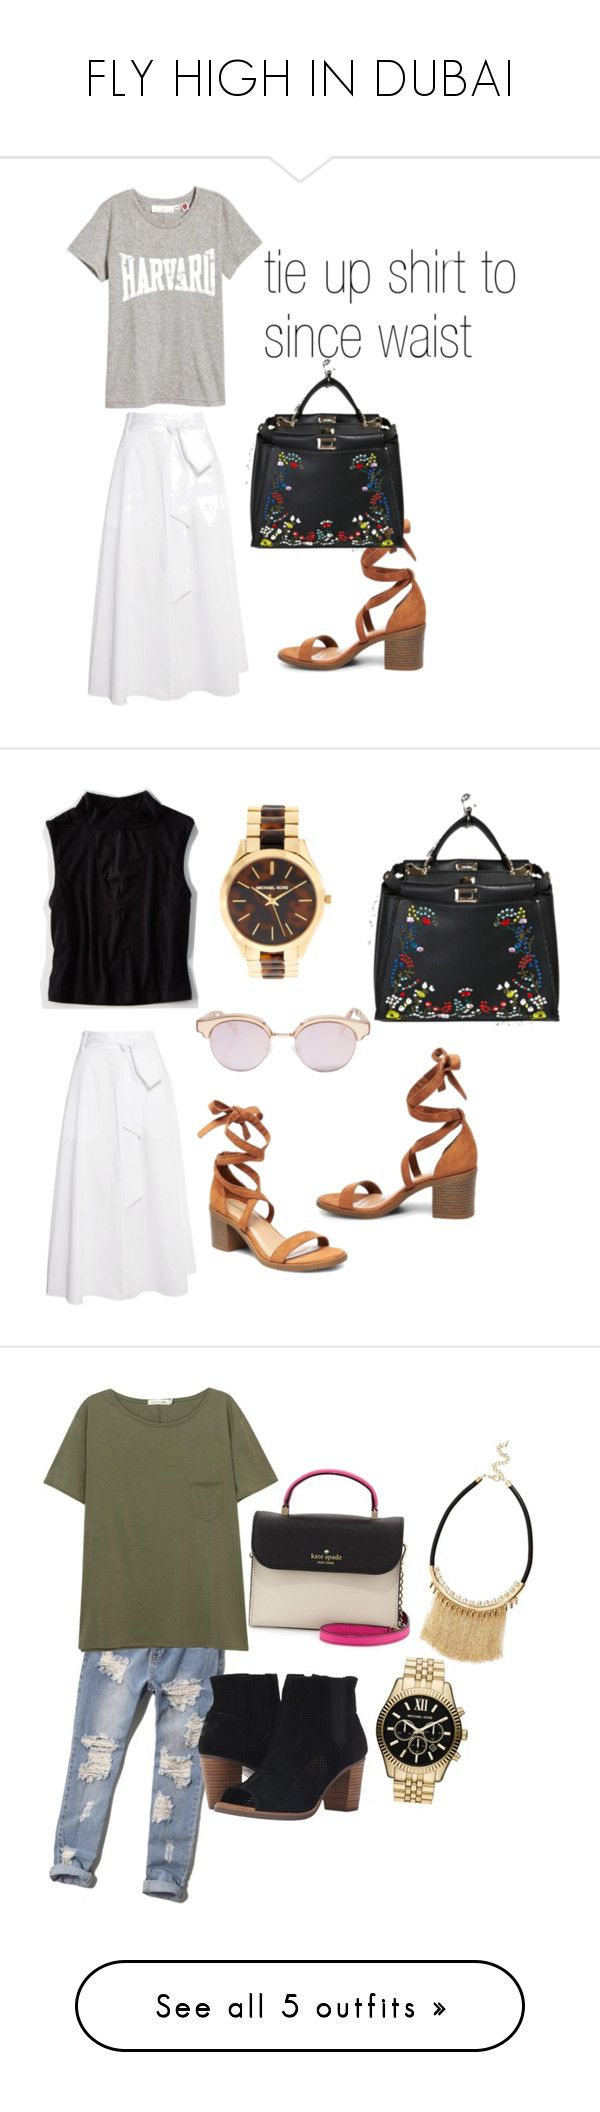 """FLY HIGH IN DUBAI"" by tasyajane on Polyvore featuring TIBI, Forever 21, Le Specs, Michael Kors, American Eagle Outfitters, Abercrombie & Fitch, Kate Spade, rag & bone/JEAN, TOMS and MICHAEL Michael Kors"